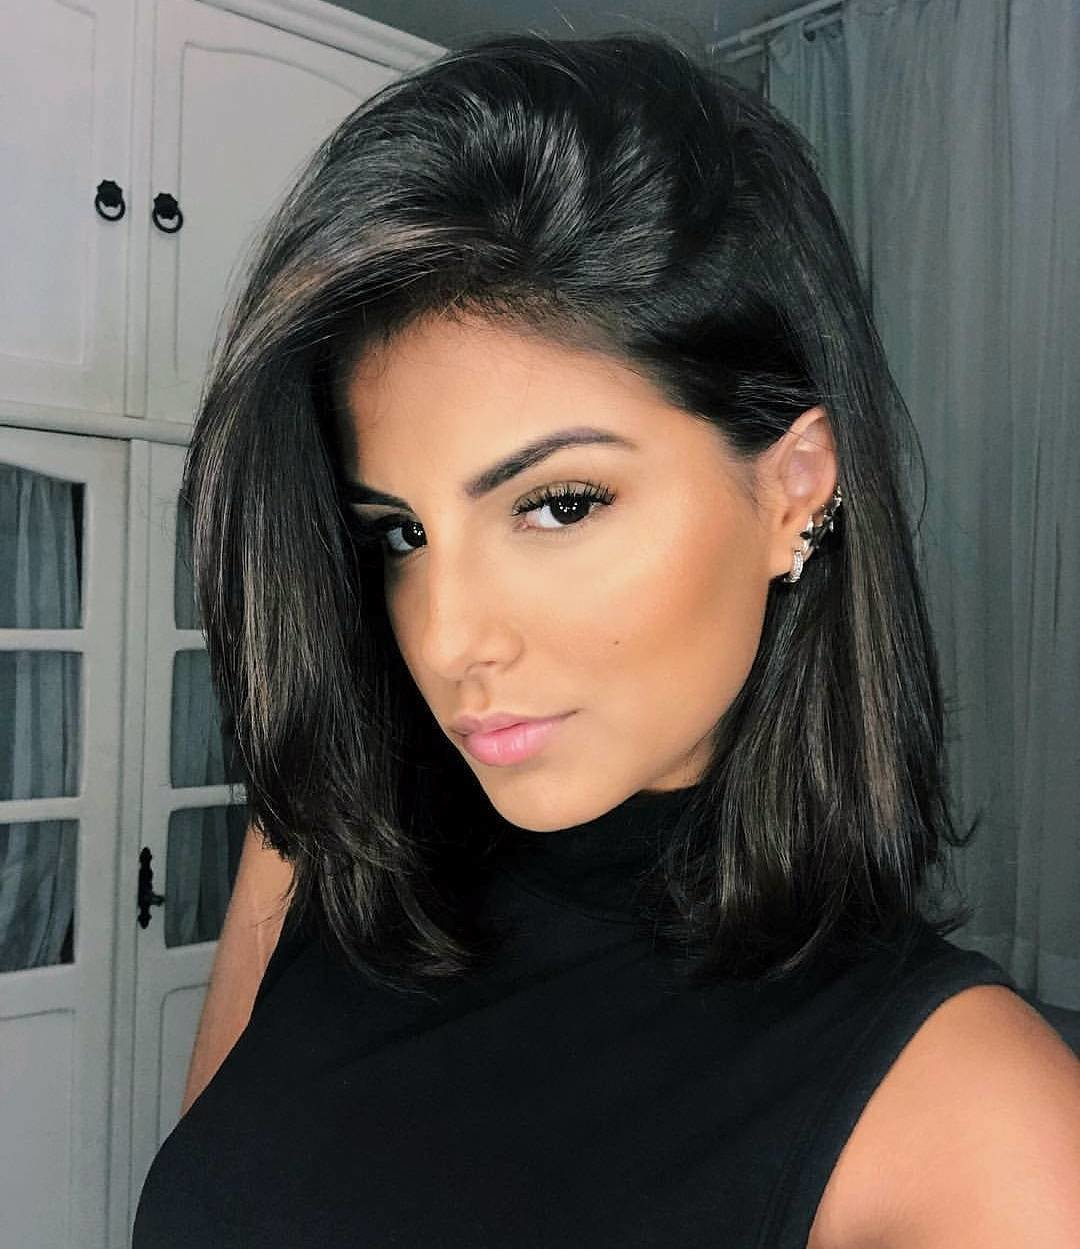 New 10 Super Cute And Easy Medium Hairstyles 2019 Ideas With Pictures